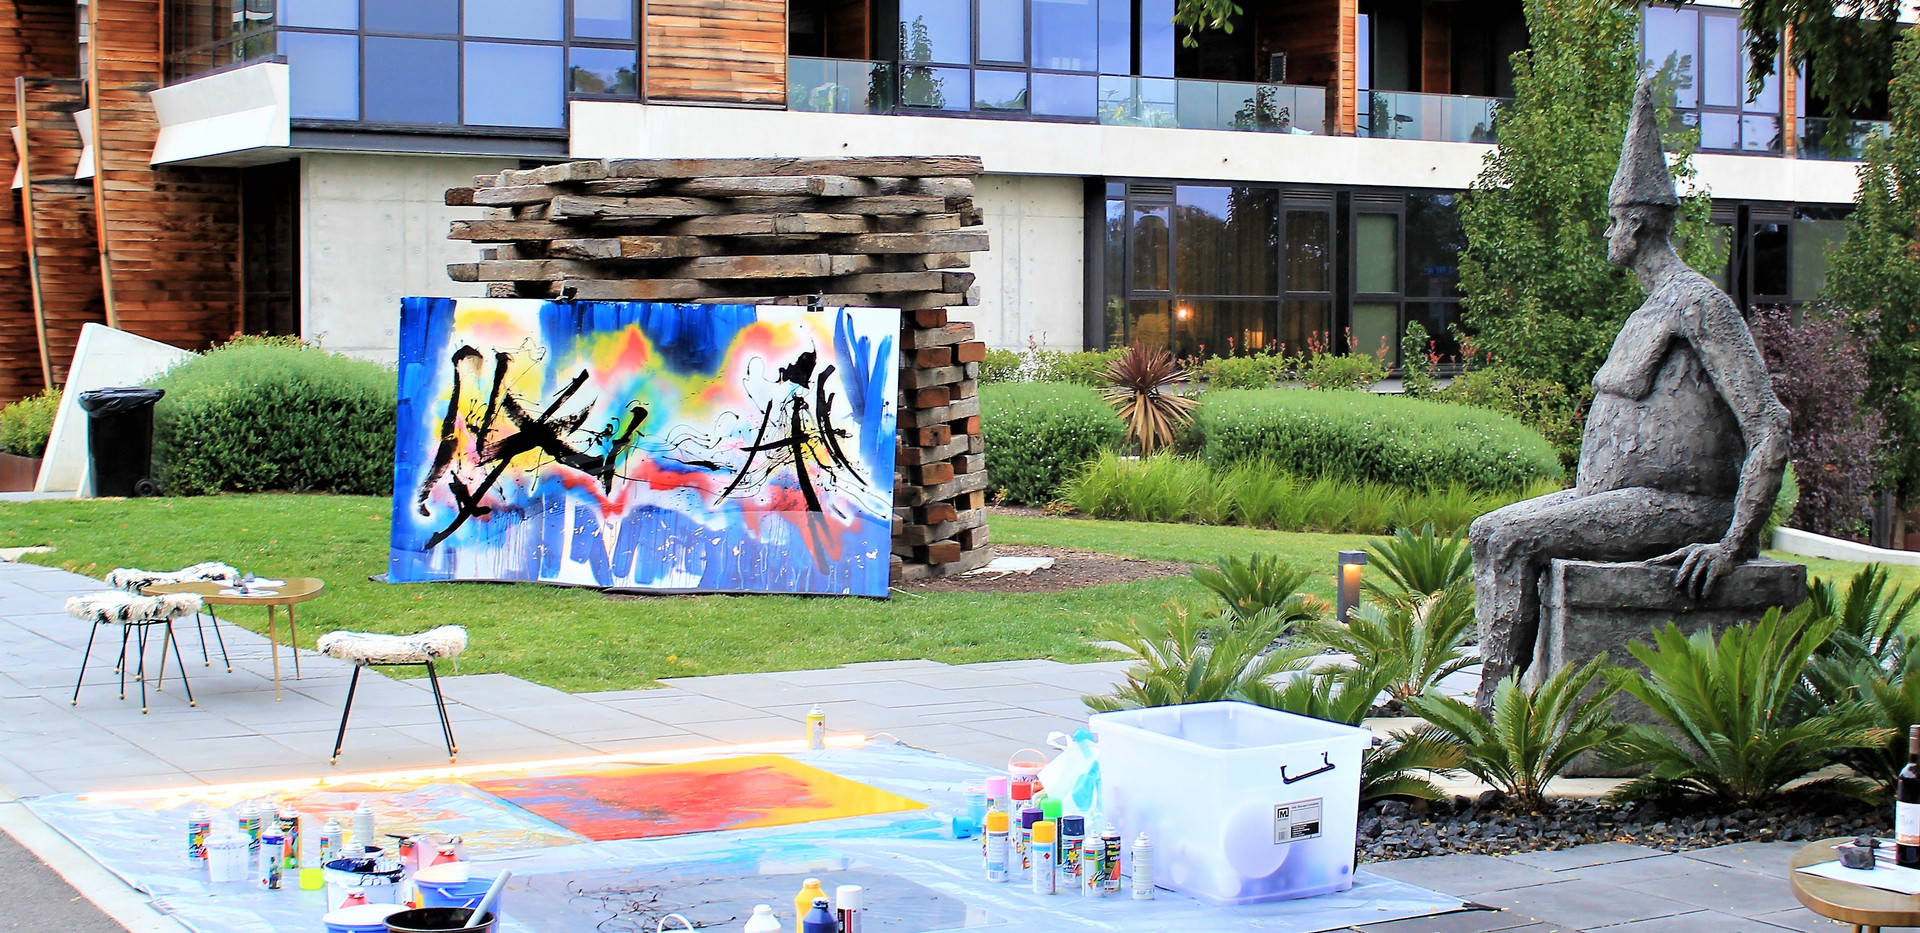 Sabres and live painting in the Nishi Gallery courtyard